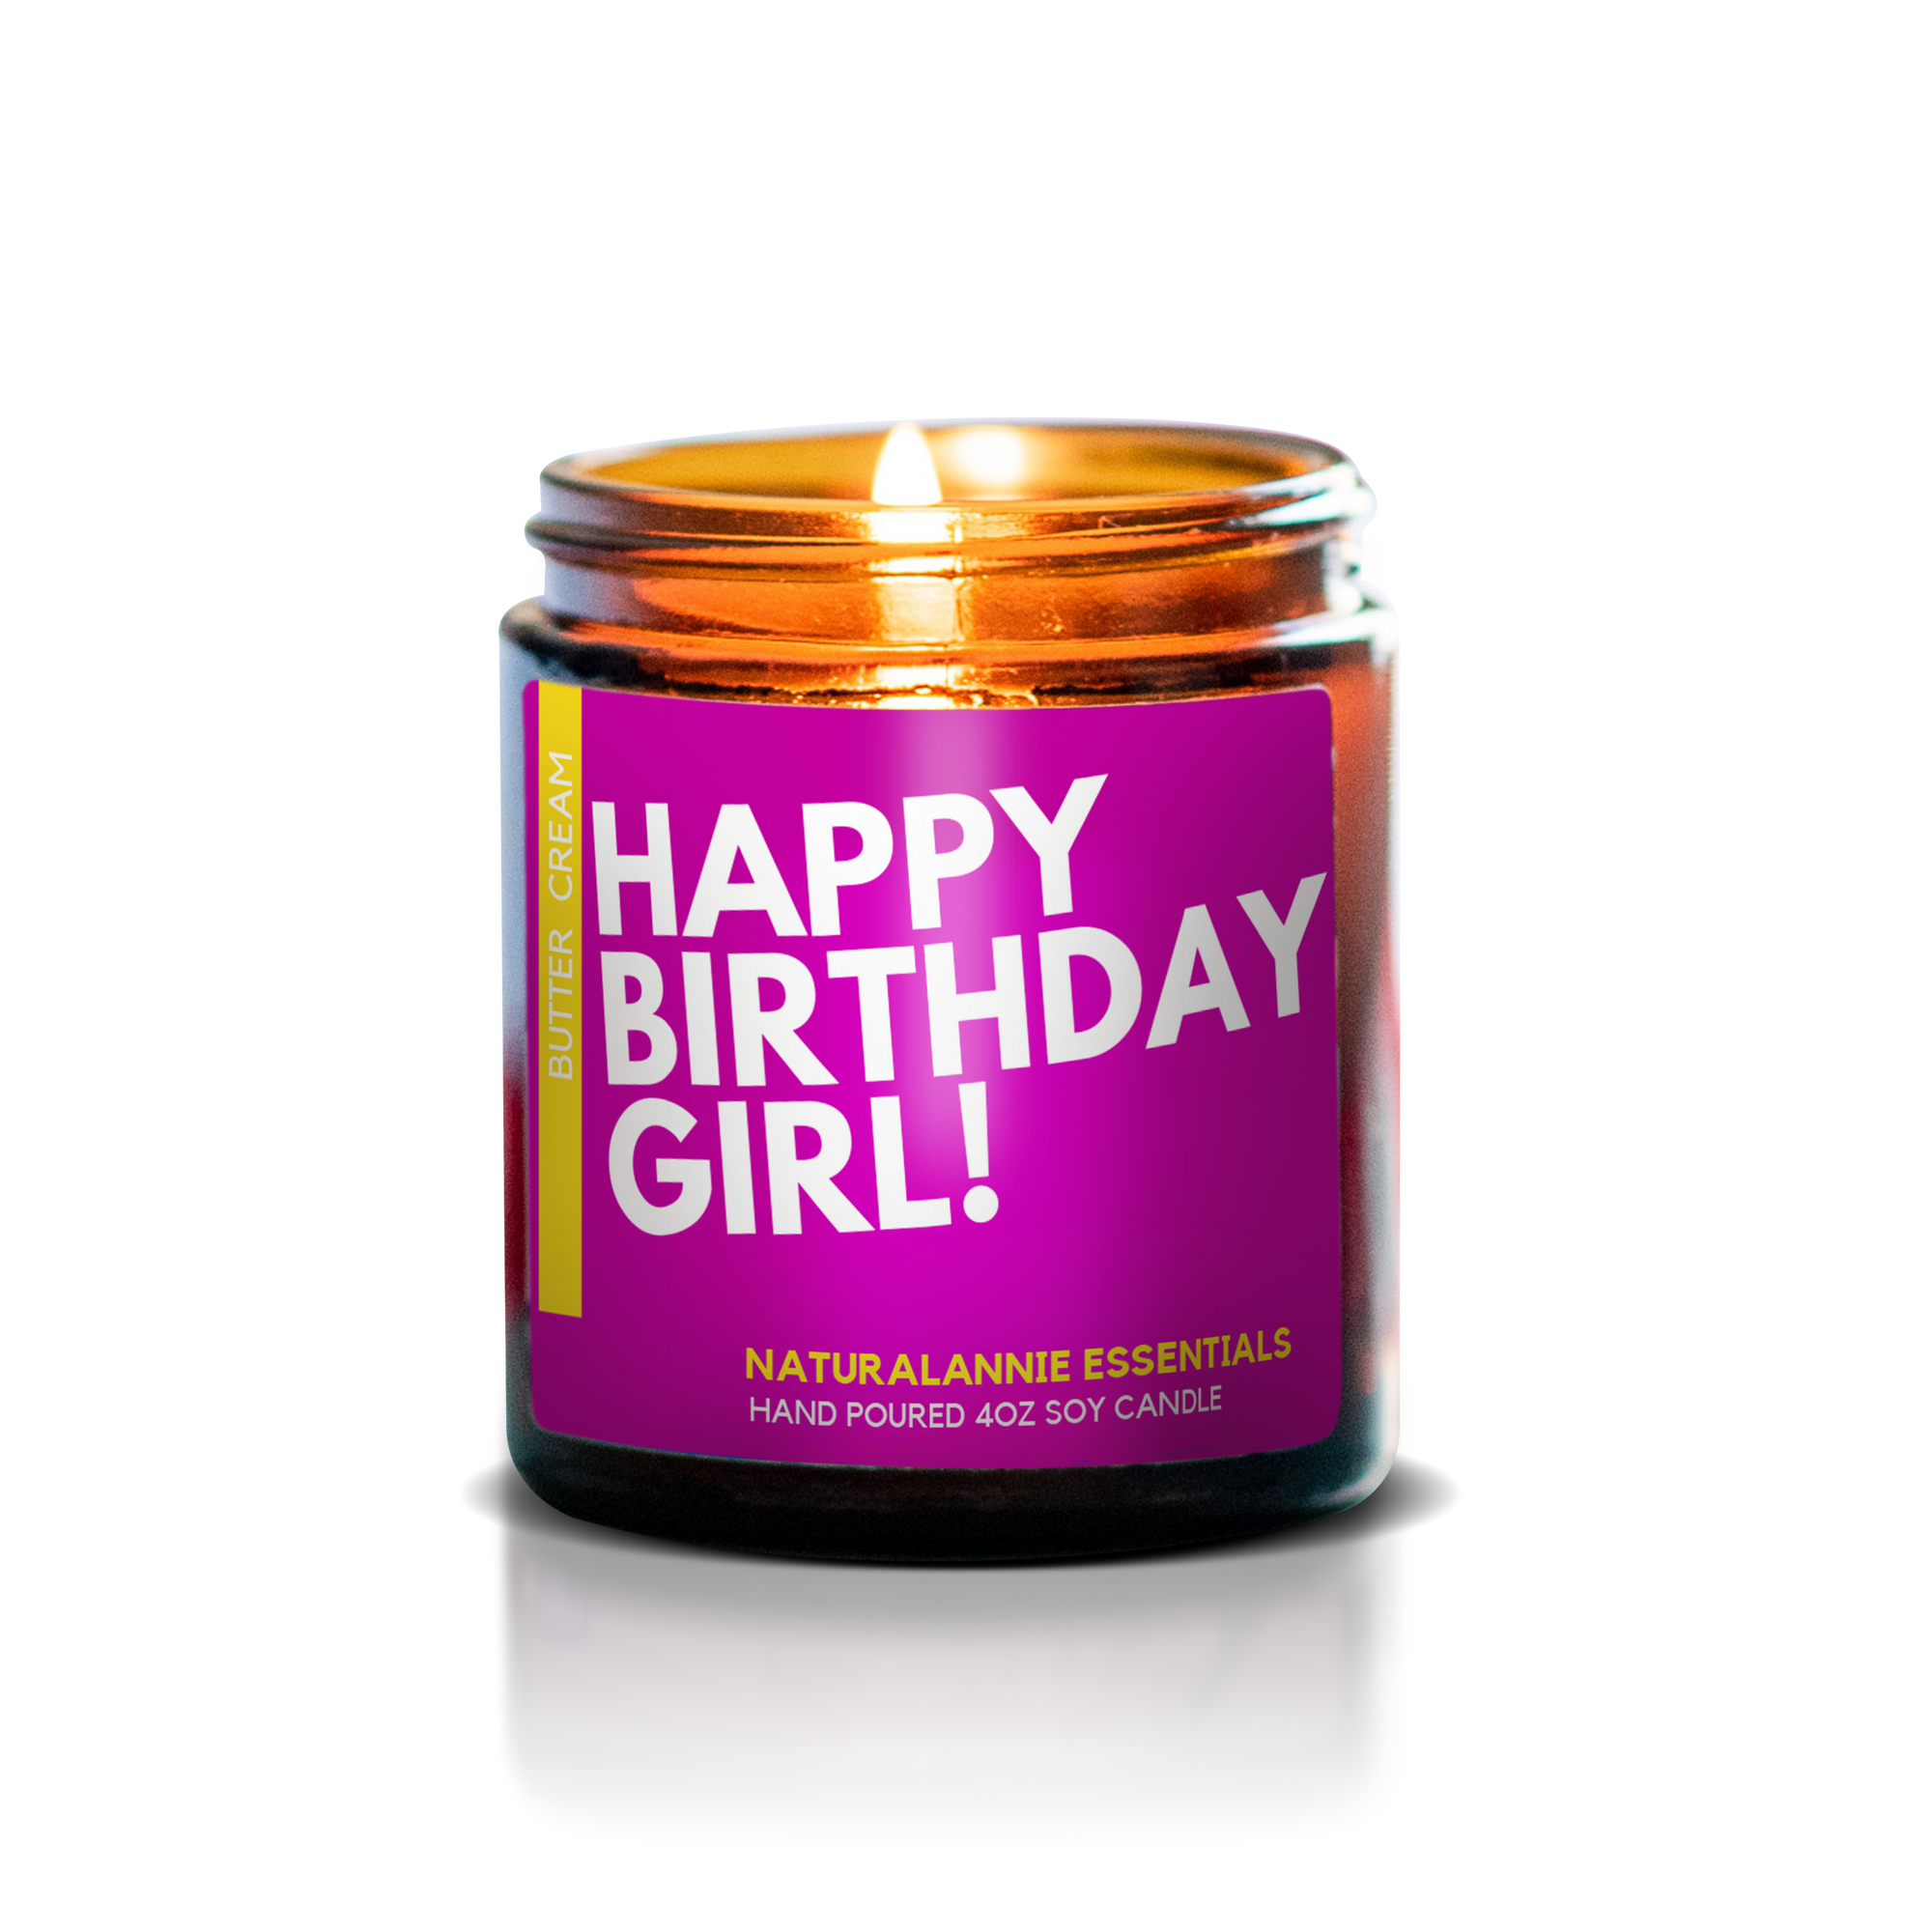 HAPPY BIRTHDAY GIRL! Butter and Cream Scented Soy Candle